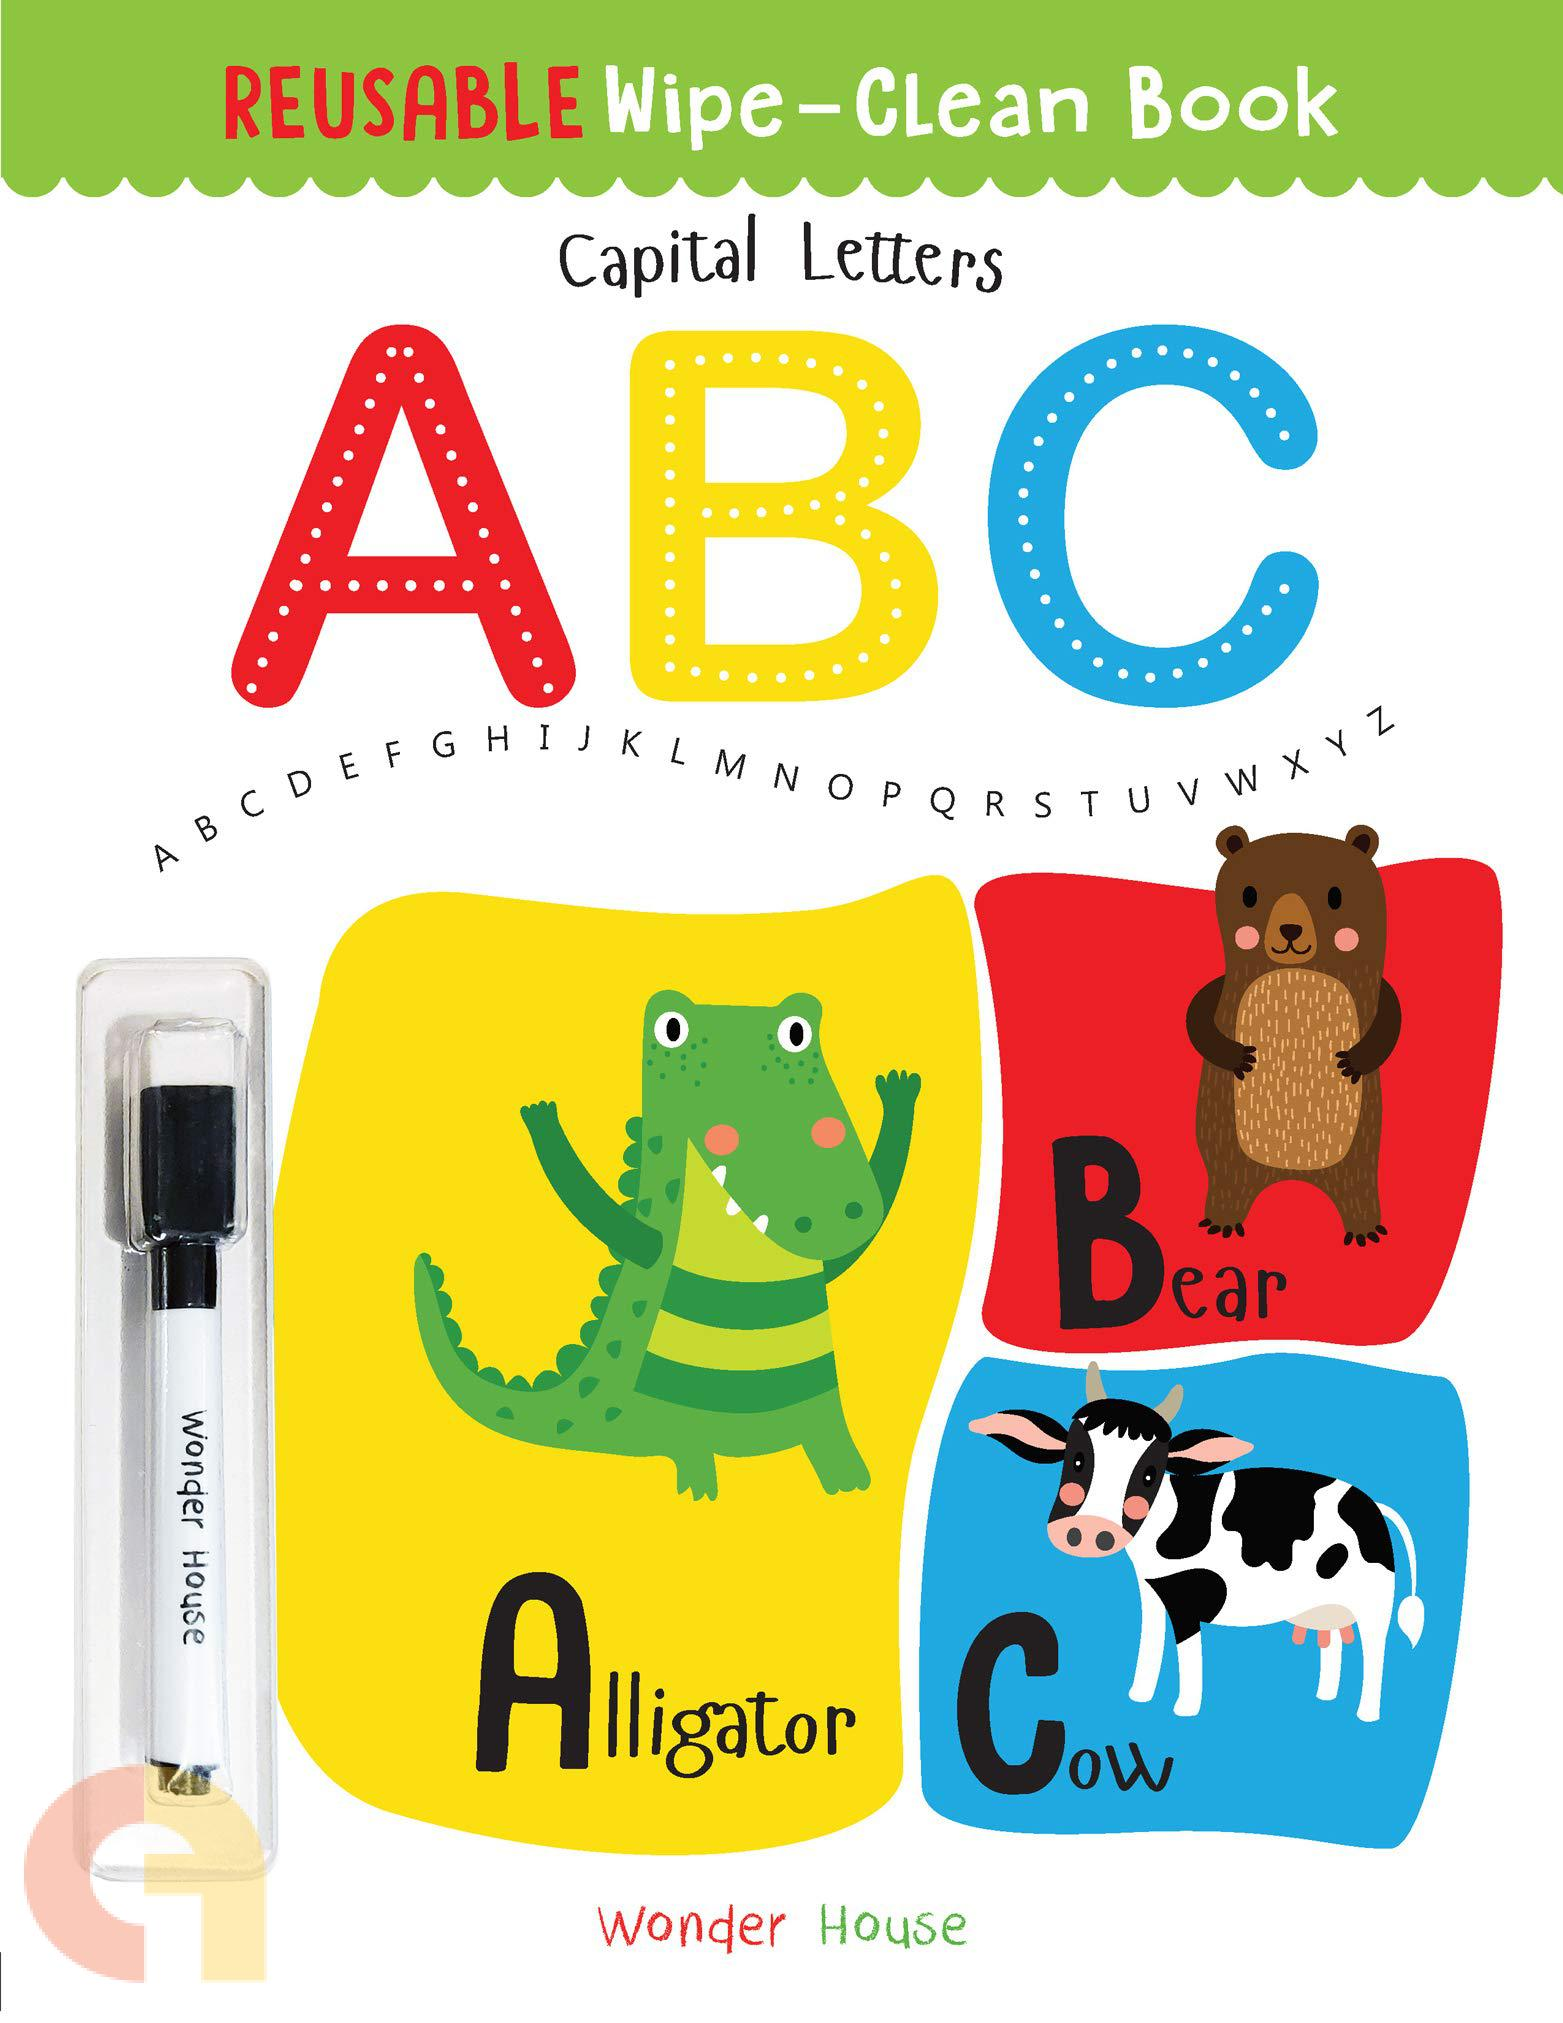 Reusable Wipe And Clean Book: Capital Letters